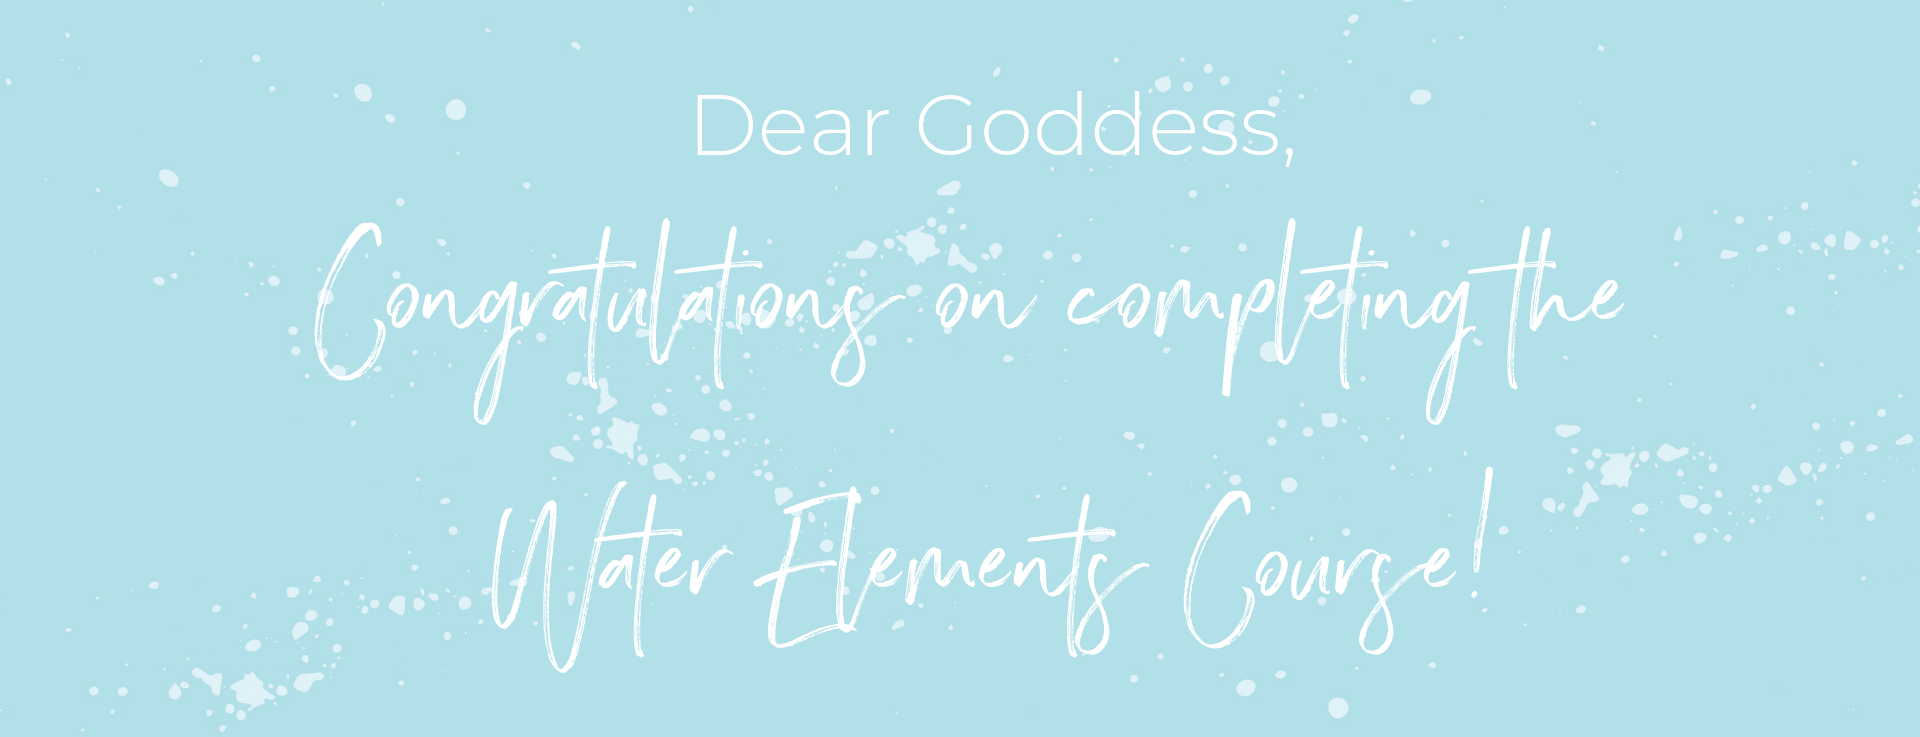 Congrats_Water elements course.png